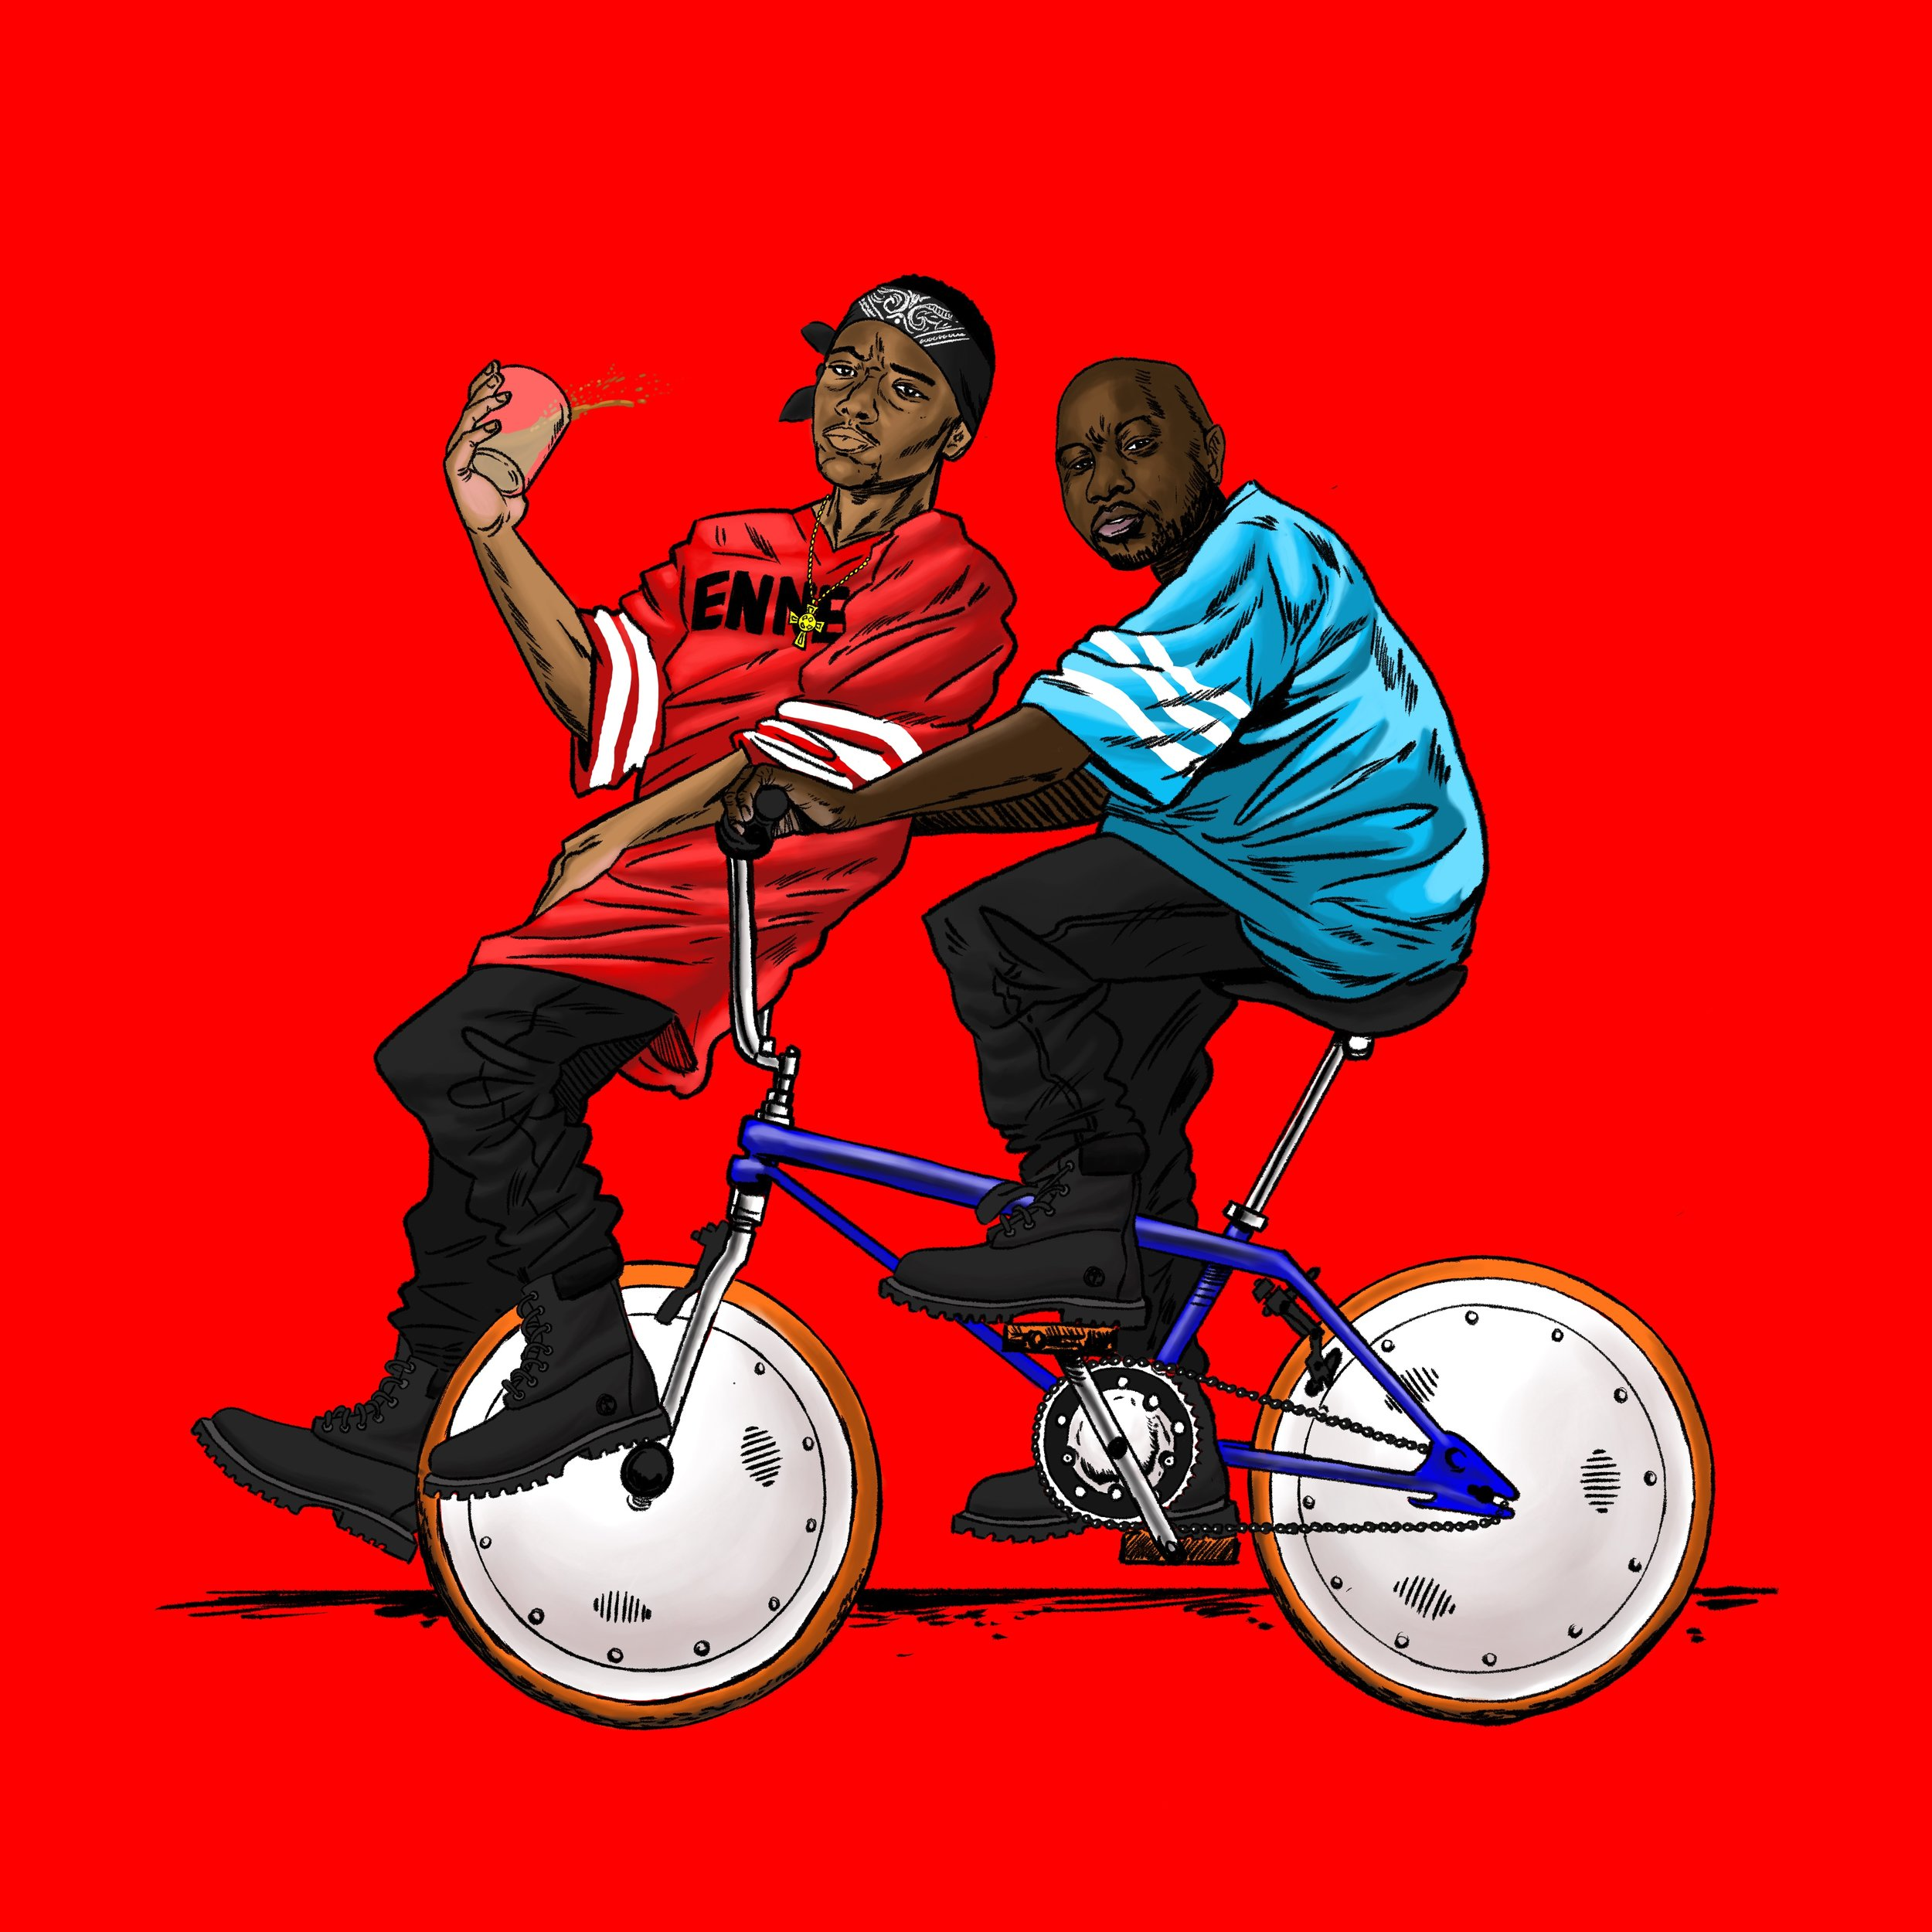 Mobb Deep on a BMX